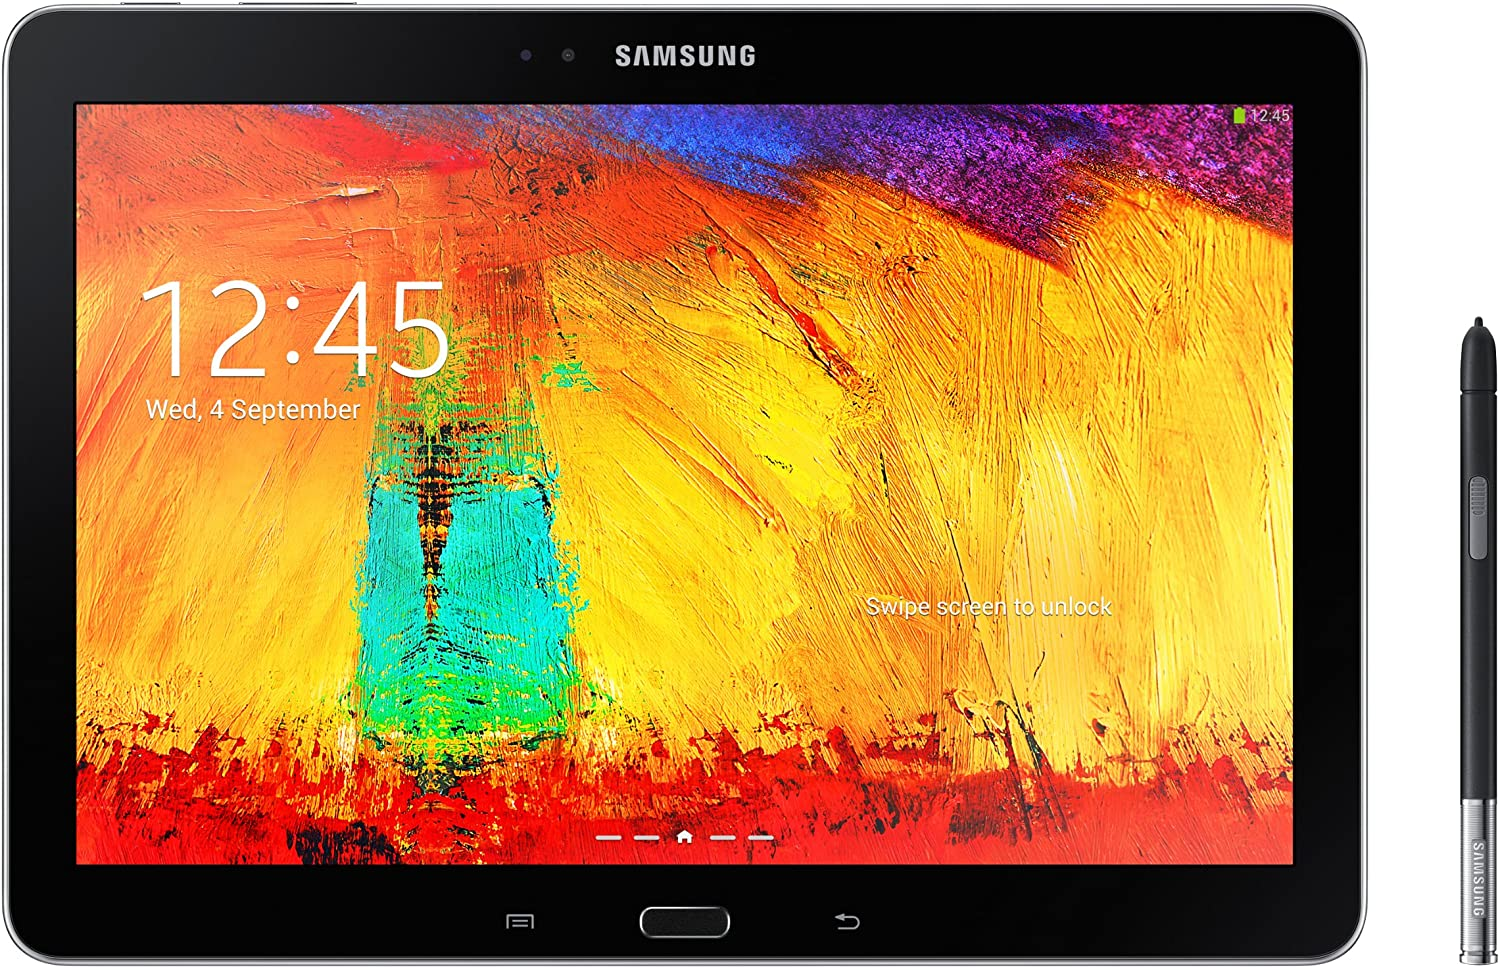 Samsung Galaxy Note 10.1 2014 - Tablet Android (1.9 GHz, microSD, 16 GB, 8 MP, 3GB RAM, 10.1